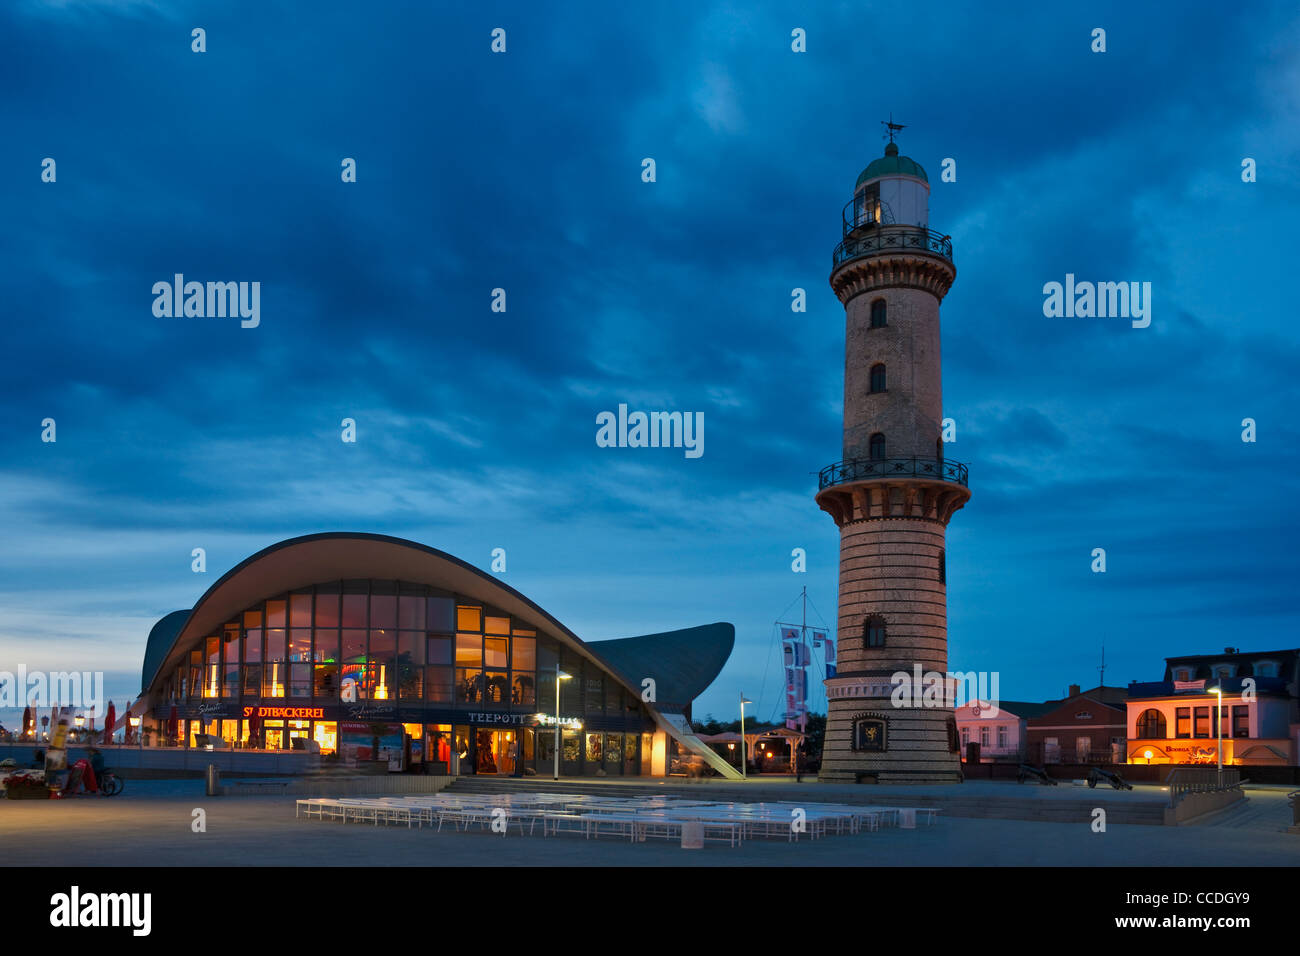 Old lighthouse an Teepot-building in Rostock Warnemuende at night, Rostock, Mecklenburg-Western Pomerania, Germany, - Stock Image